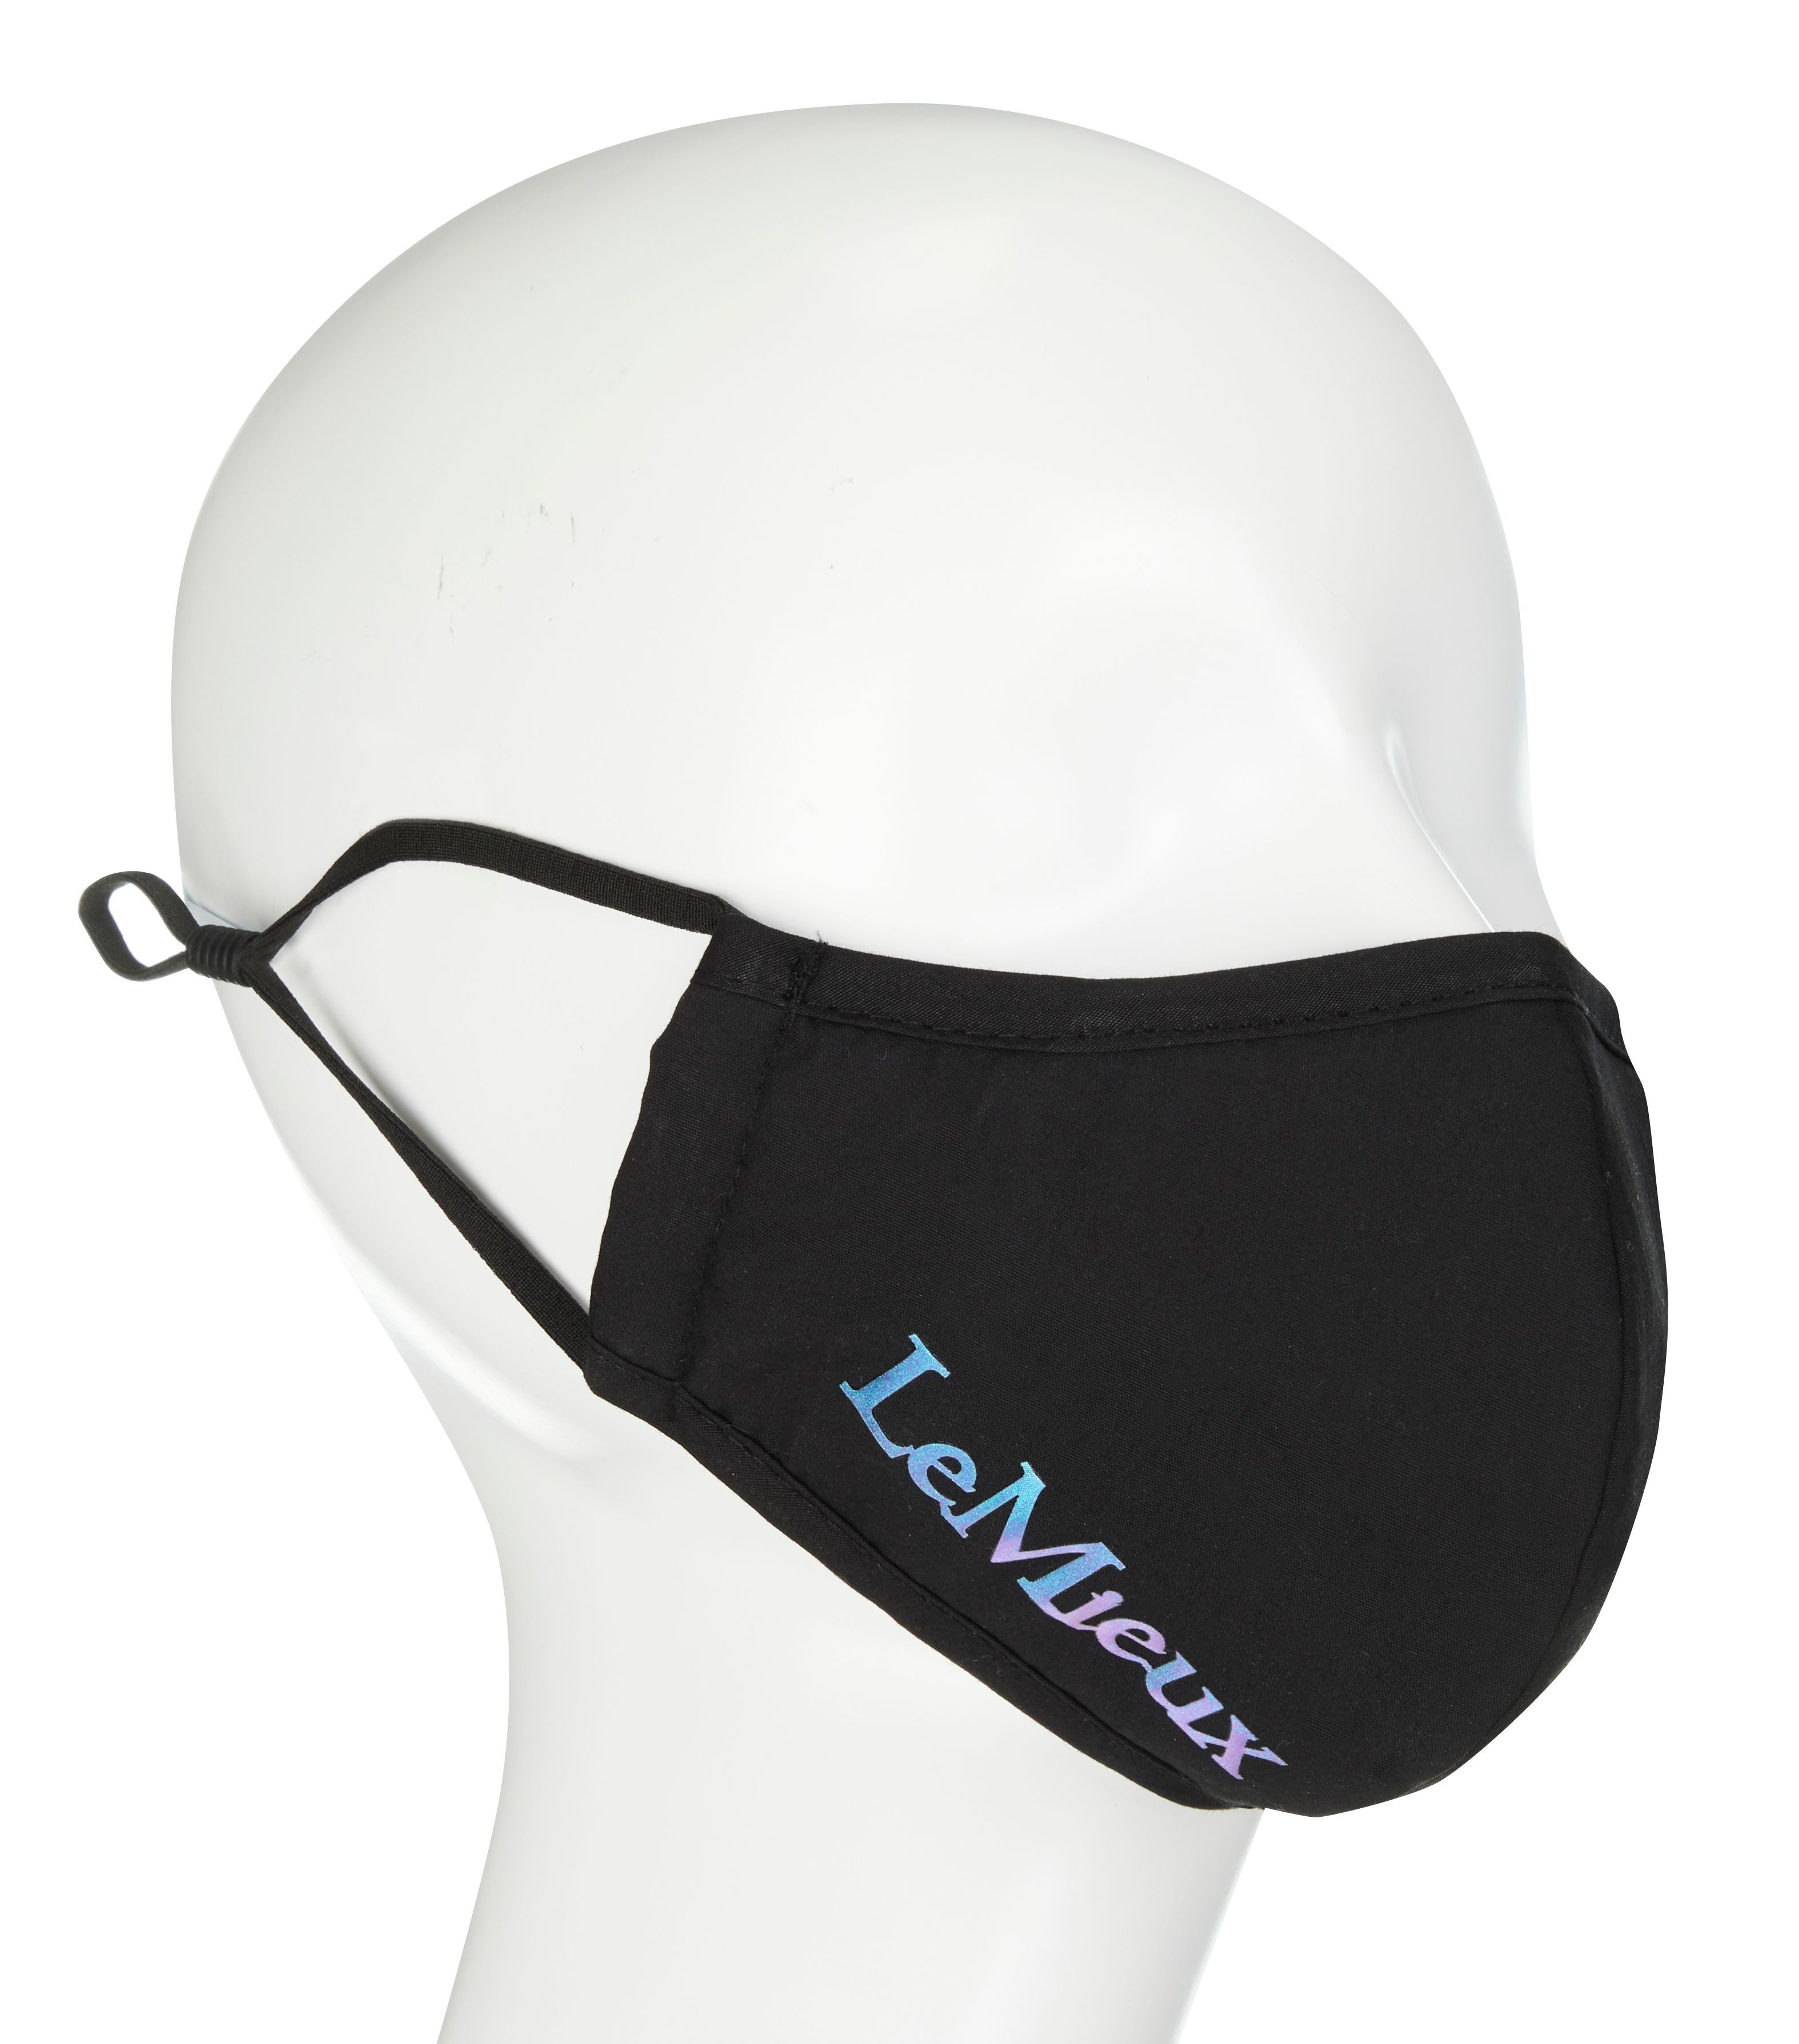 LeMieux Reusable Face Mask  - Thomas Irving's equestrian and accessories store  LeMieux Reusable Face Mask